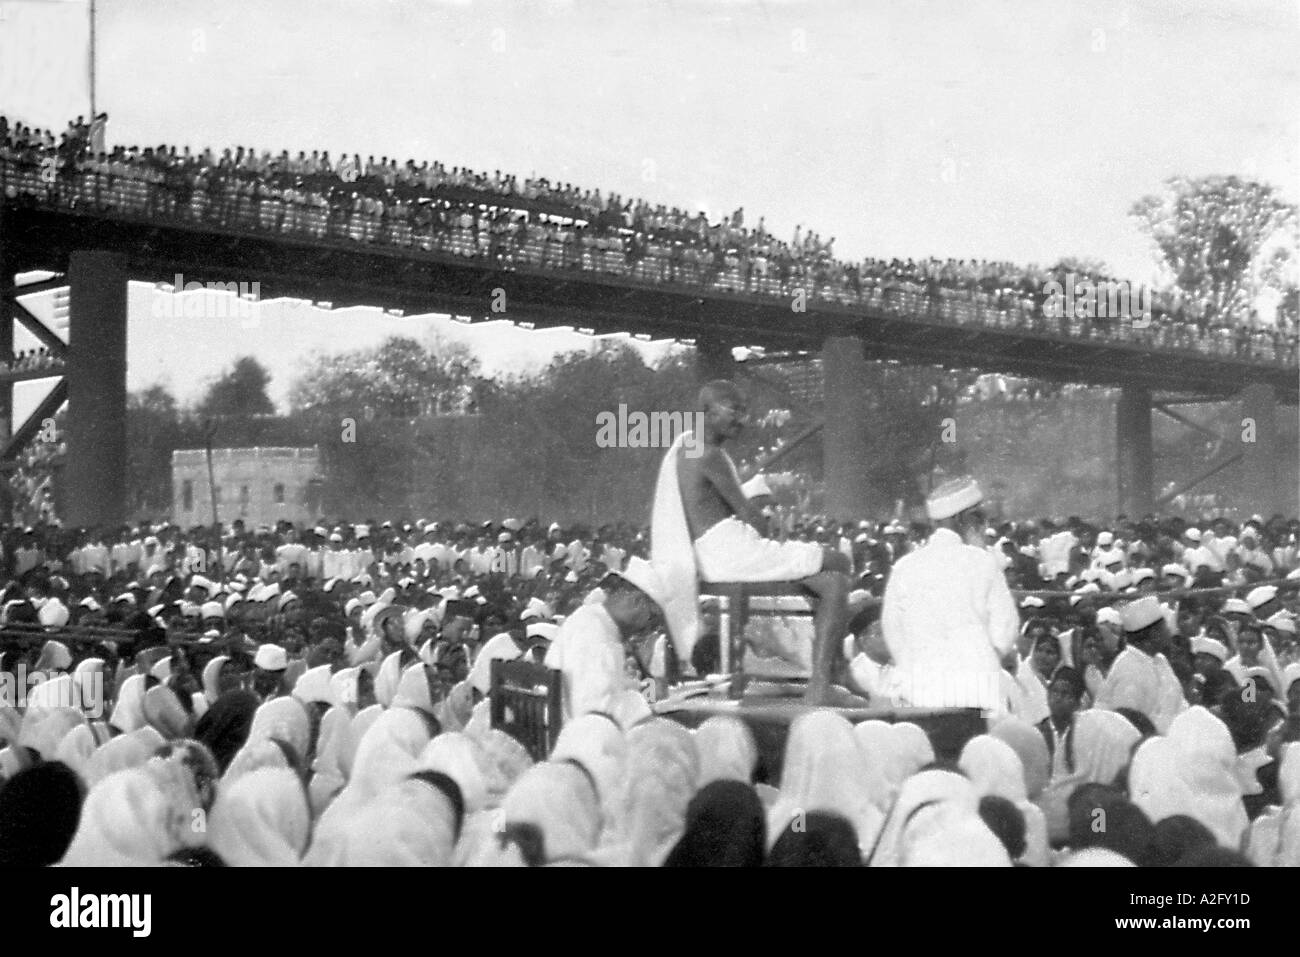 Mahatma Gandhi delivering a speech to the crowd in the dry river bed of Sabarmati river Ahmedabad Gujrat India - Stock Image